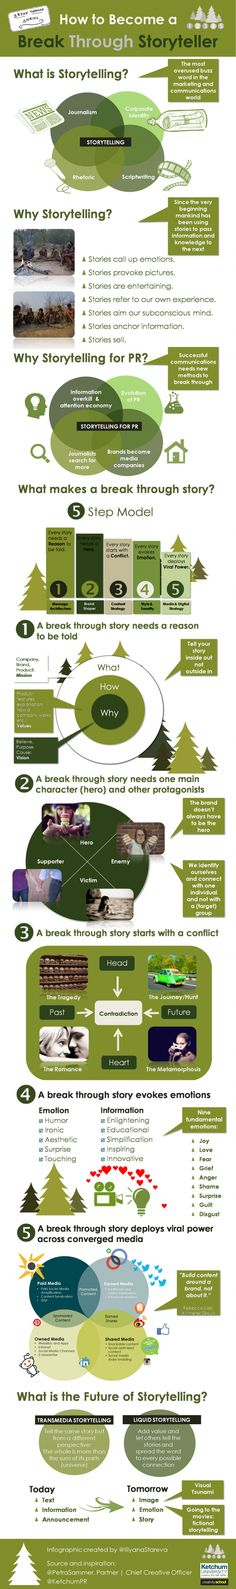 How to Become a Break Through Storyteller #Infographic #Storytelling